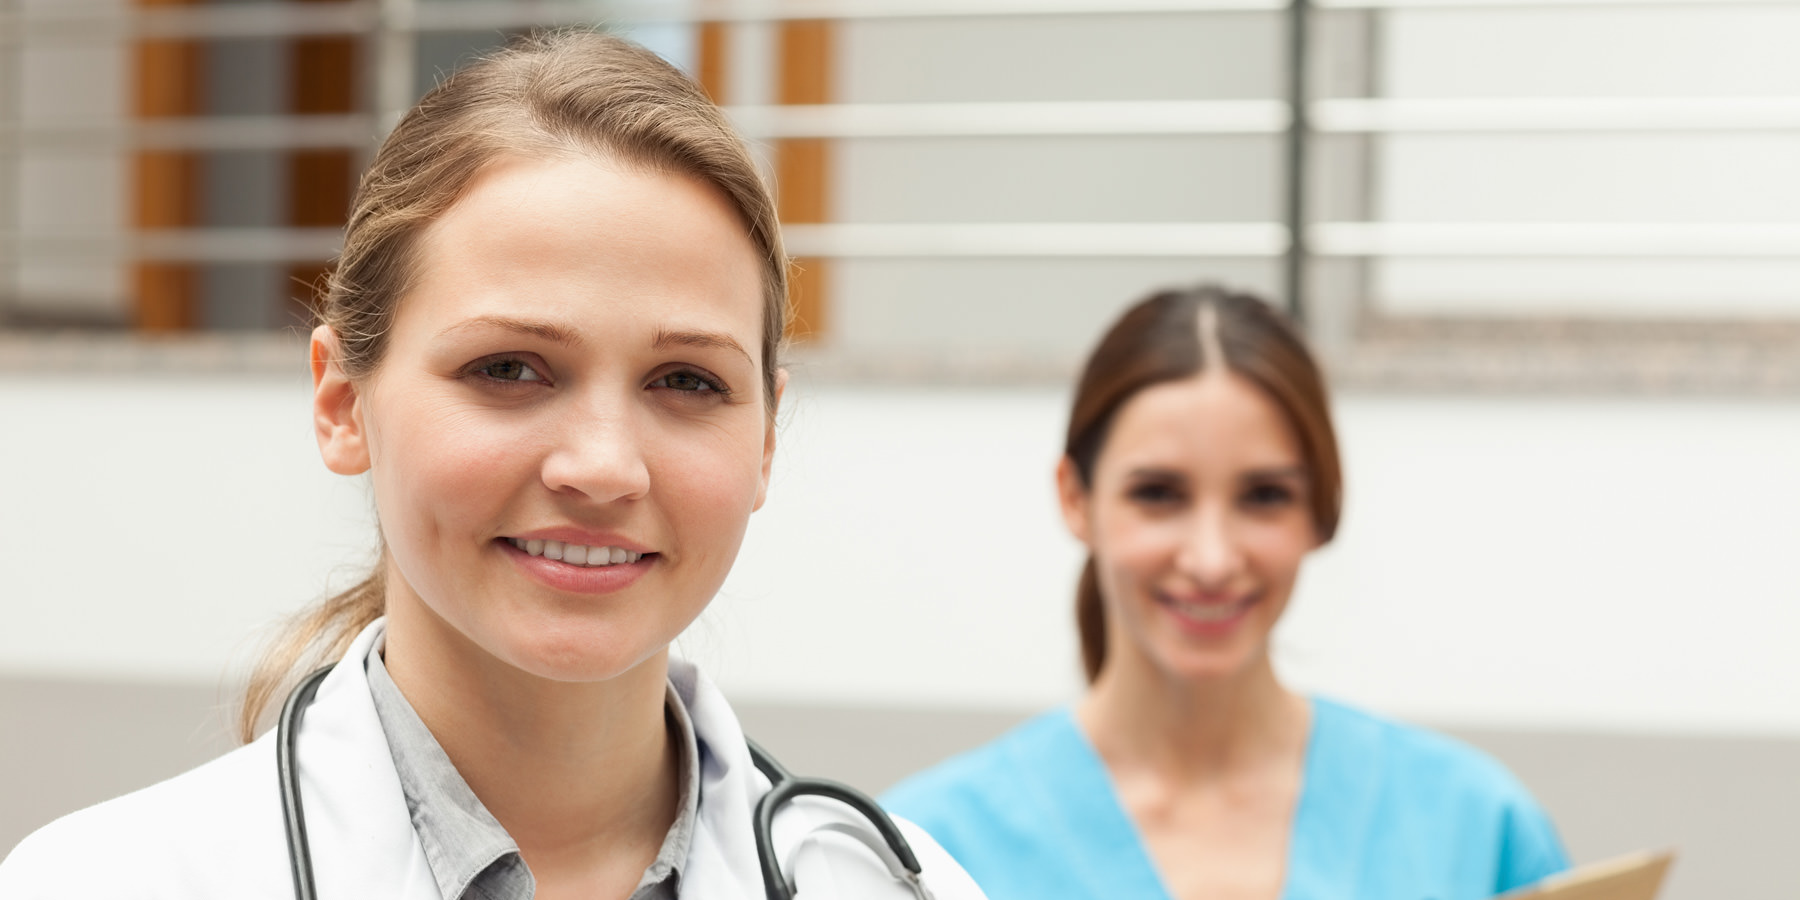 Healthcare is a key part of Passport Health's services. Join our team today!